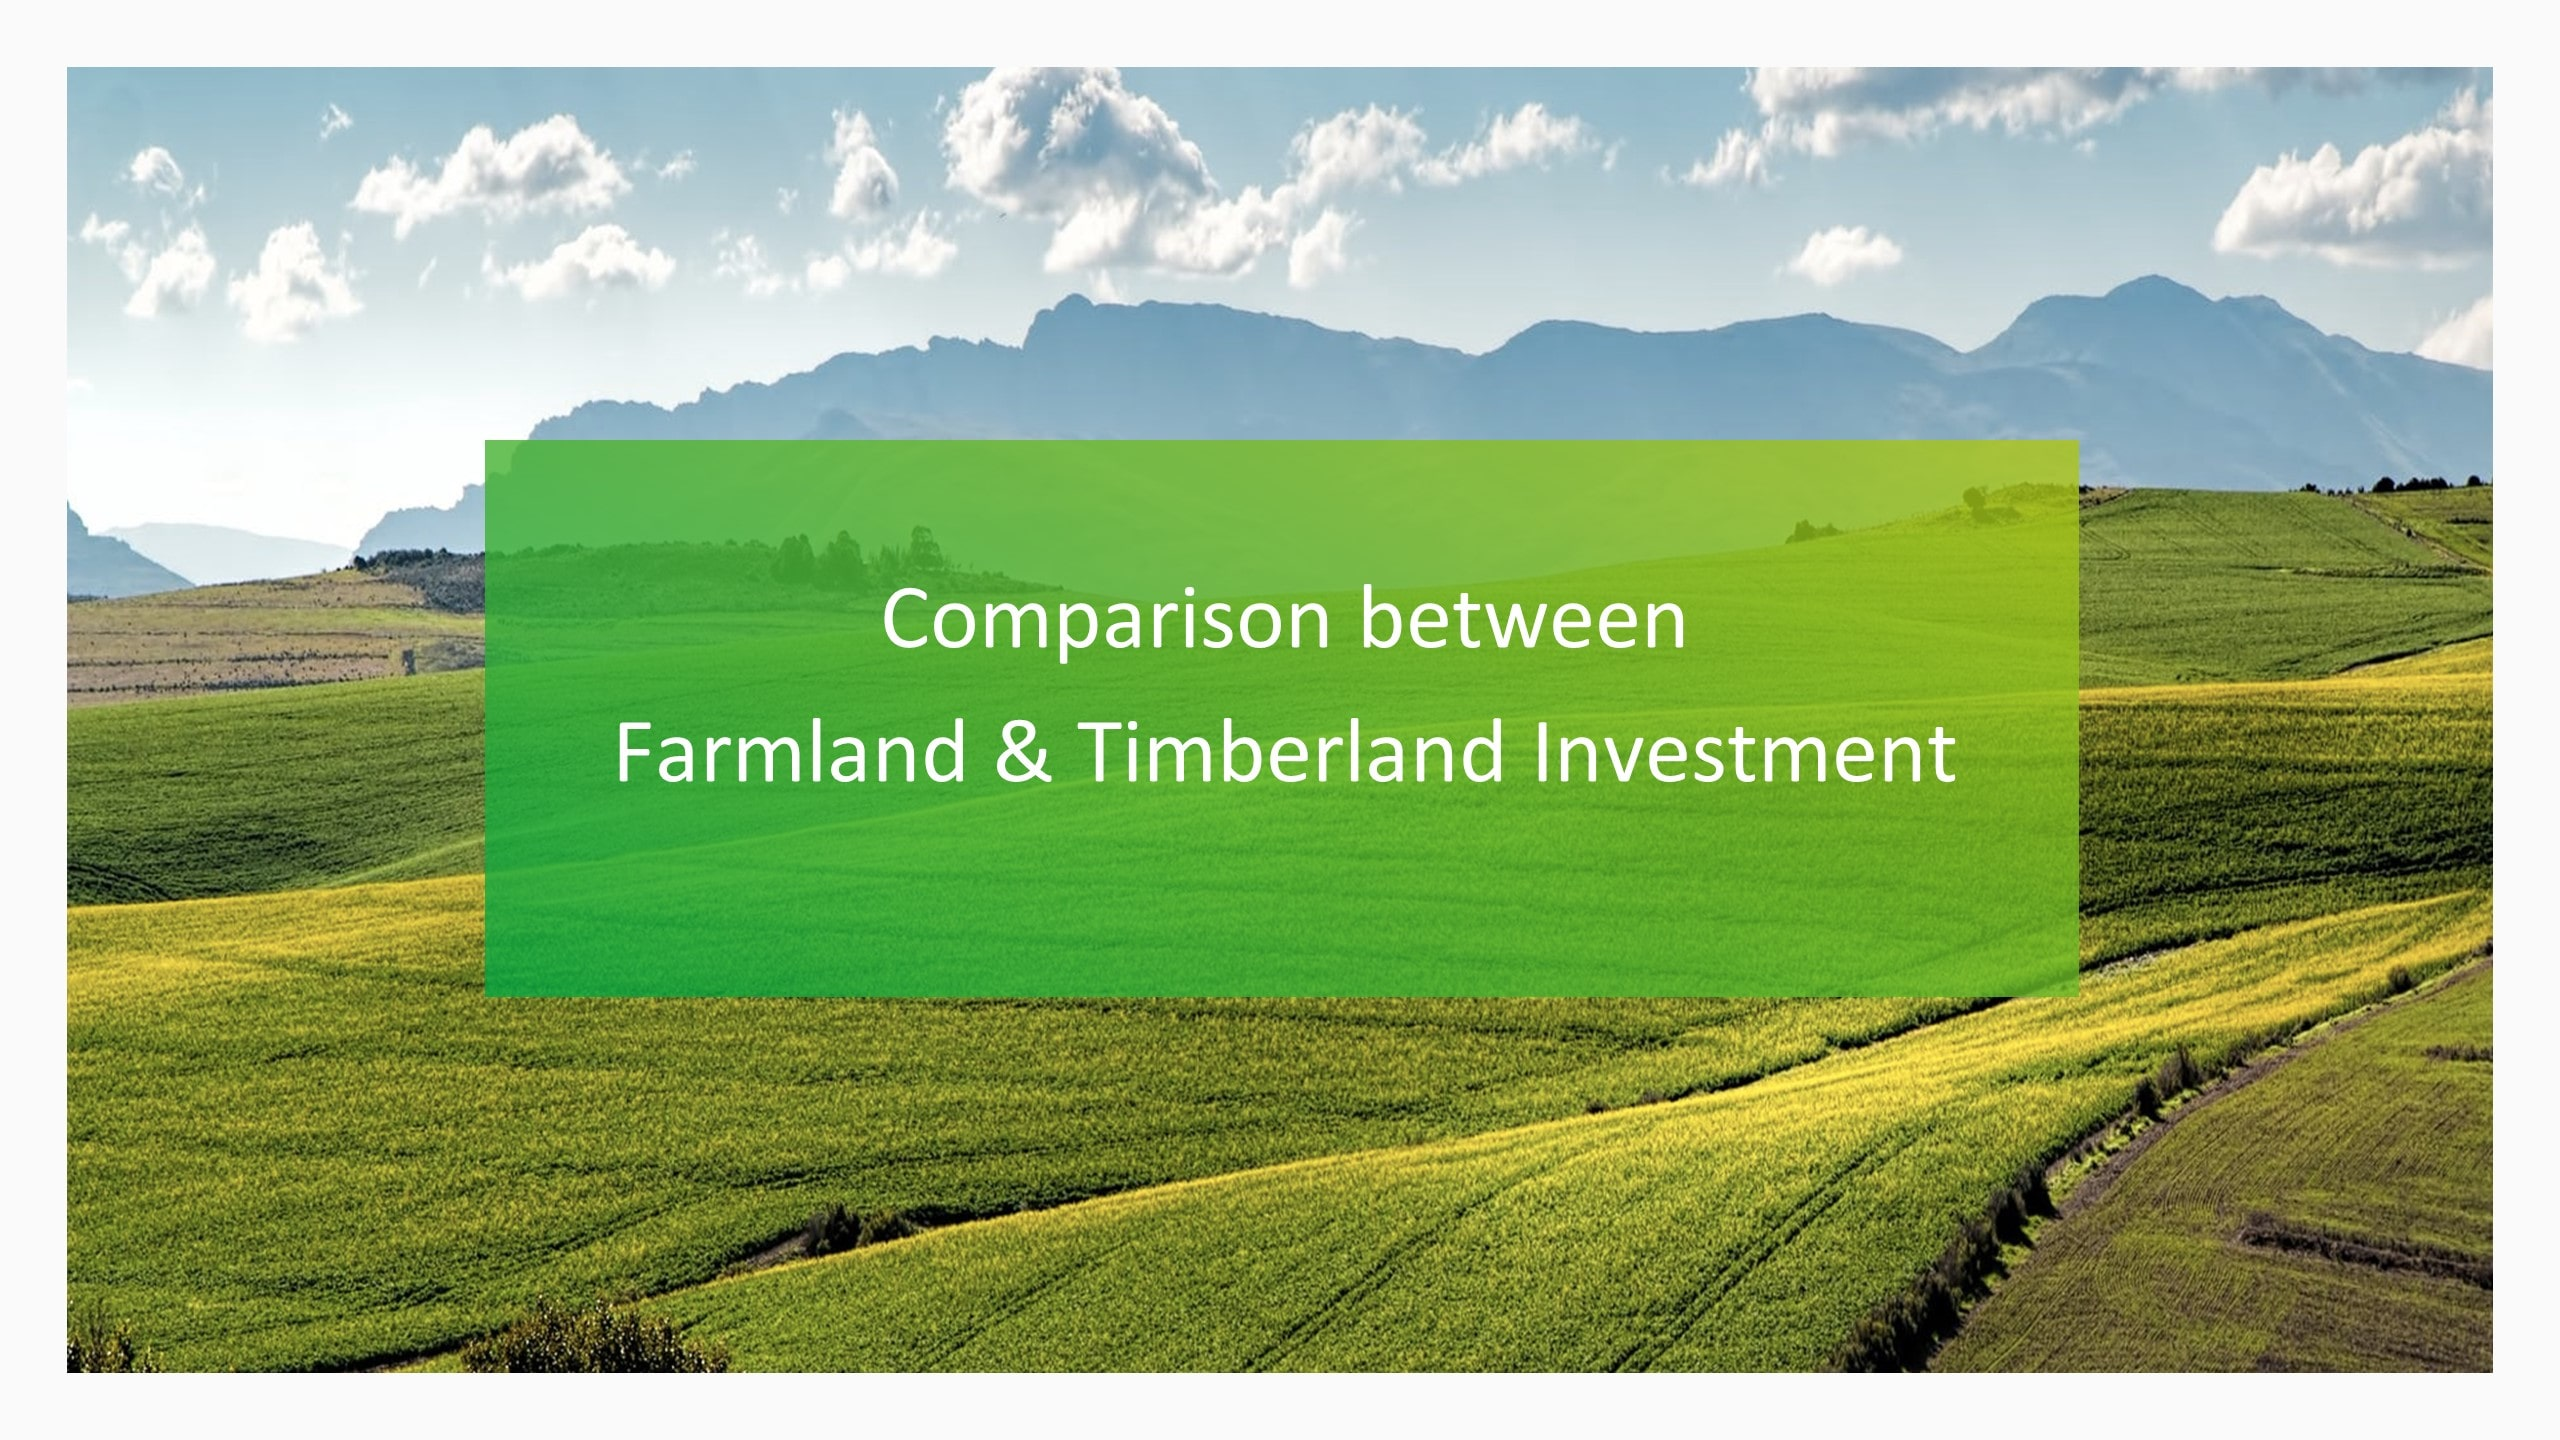 Research Report on Asset Class (Farmland/ Timberland)